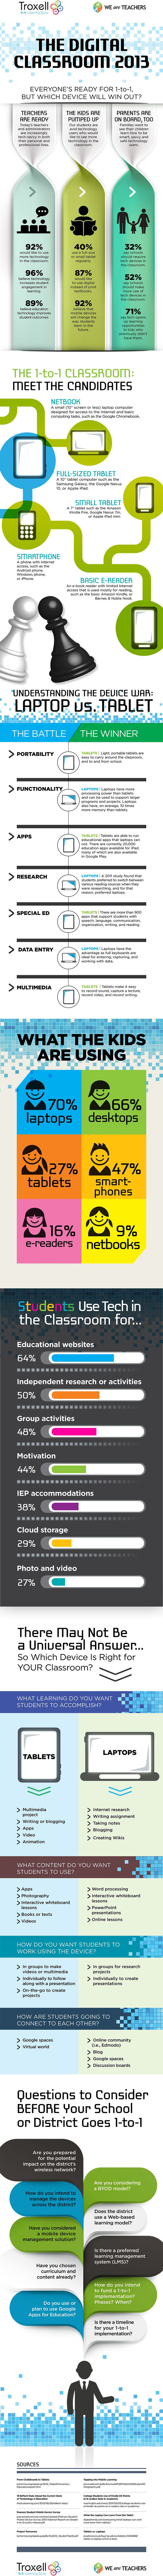 Troxell Digital Classroom Infographic Internet Site,  Website, Education Edtech, Web Site, Education Technology, Classroom 2013, Technology Schools, 2013 Infographic, Digital Classroom